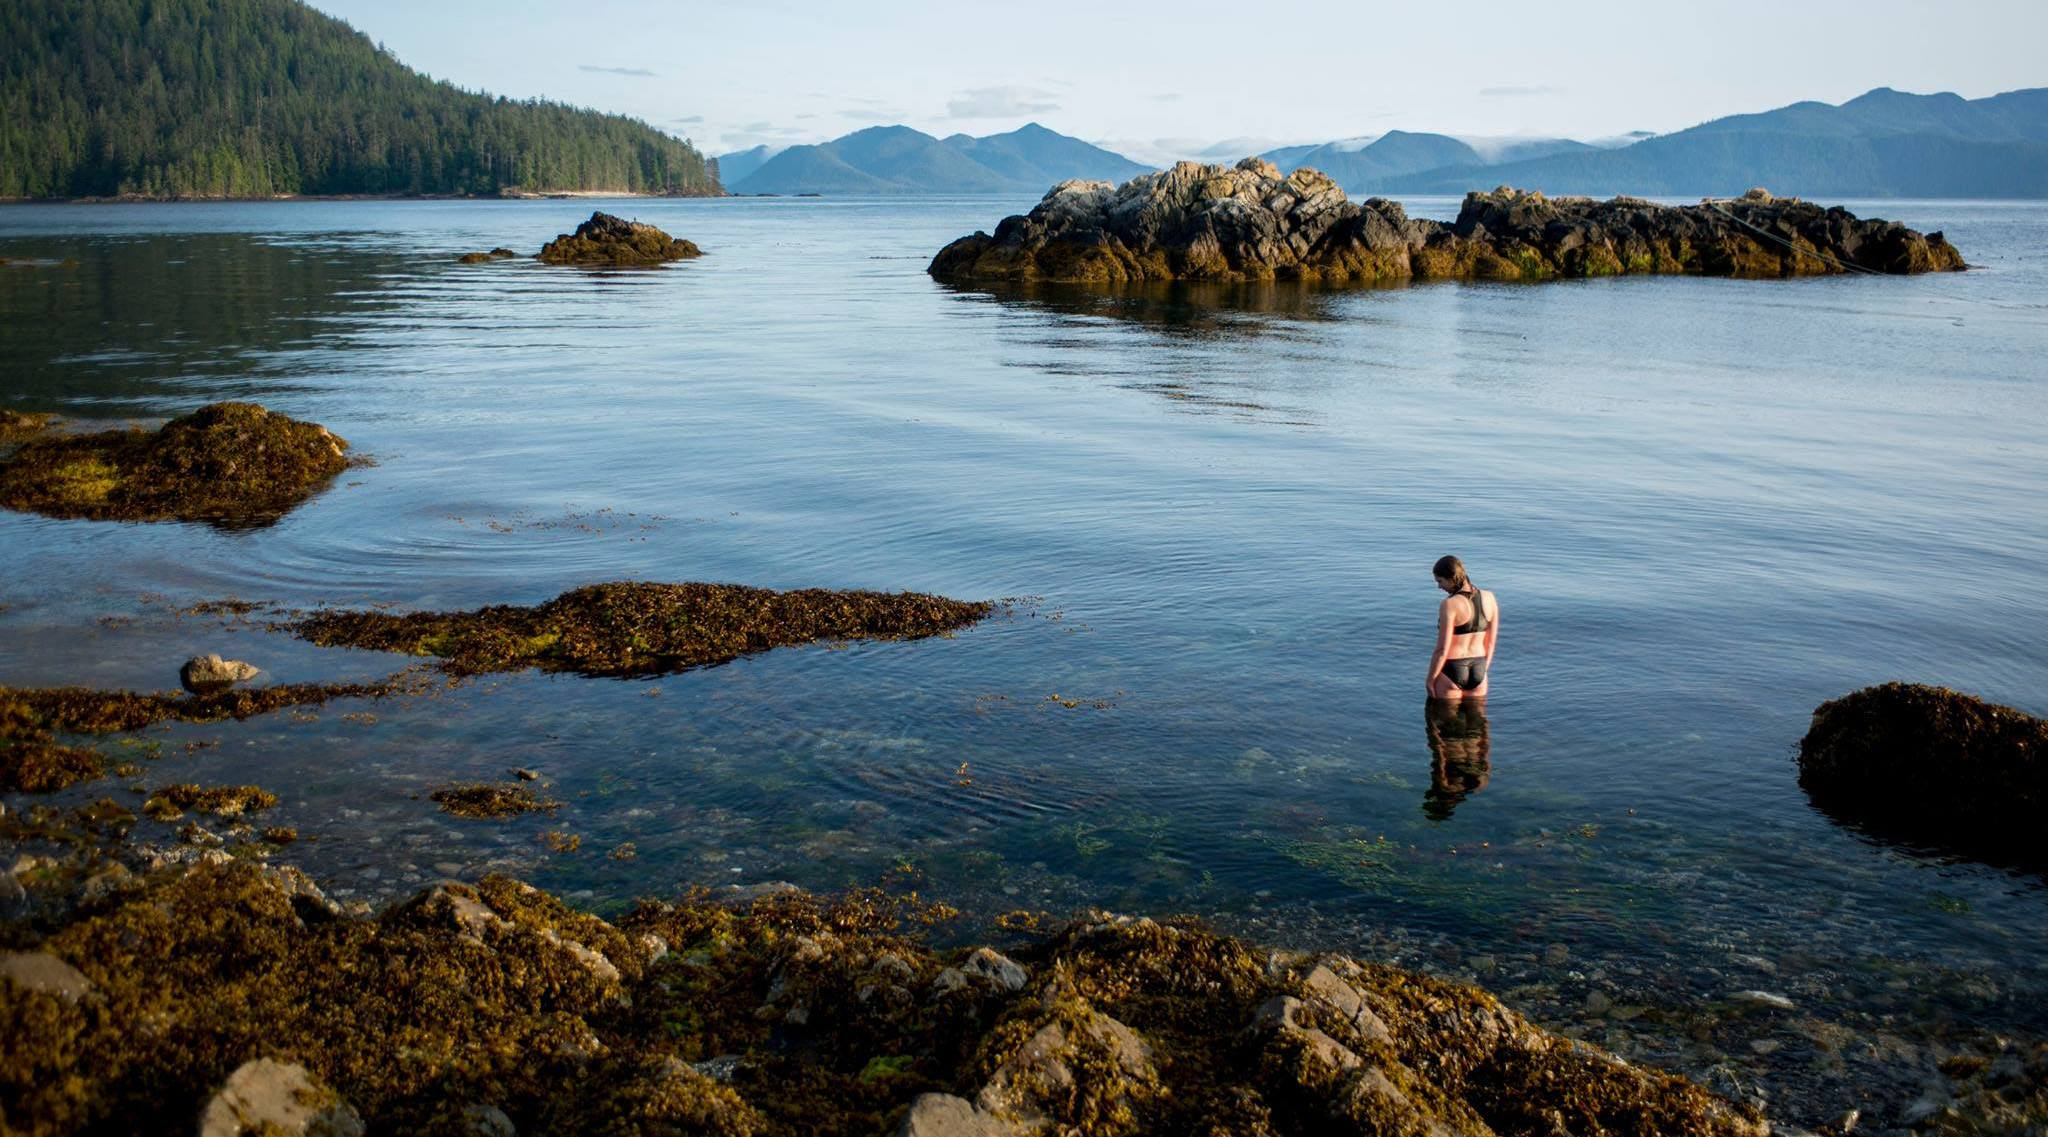 A woman in gwaii haanas national park reserve n osborne parks canada